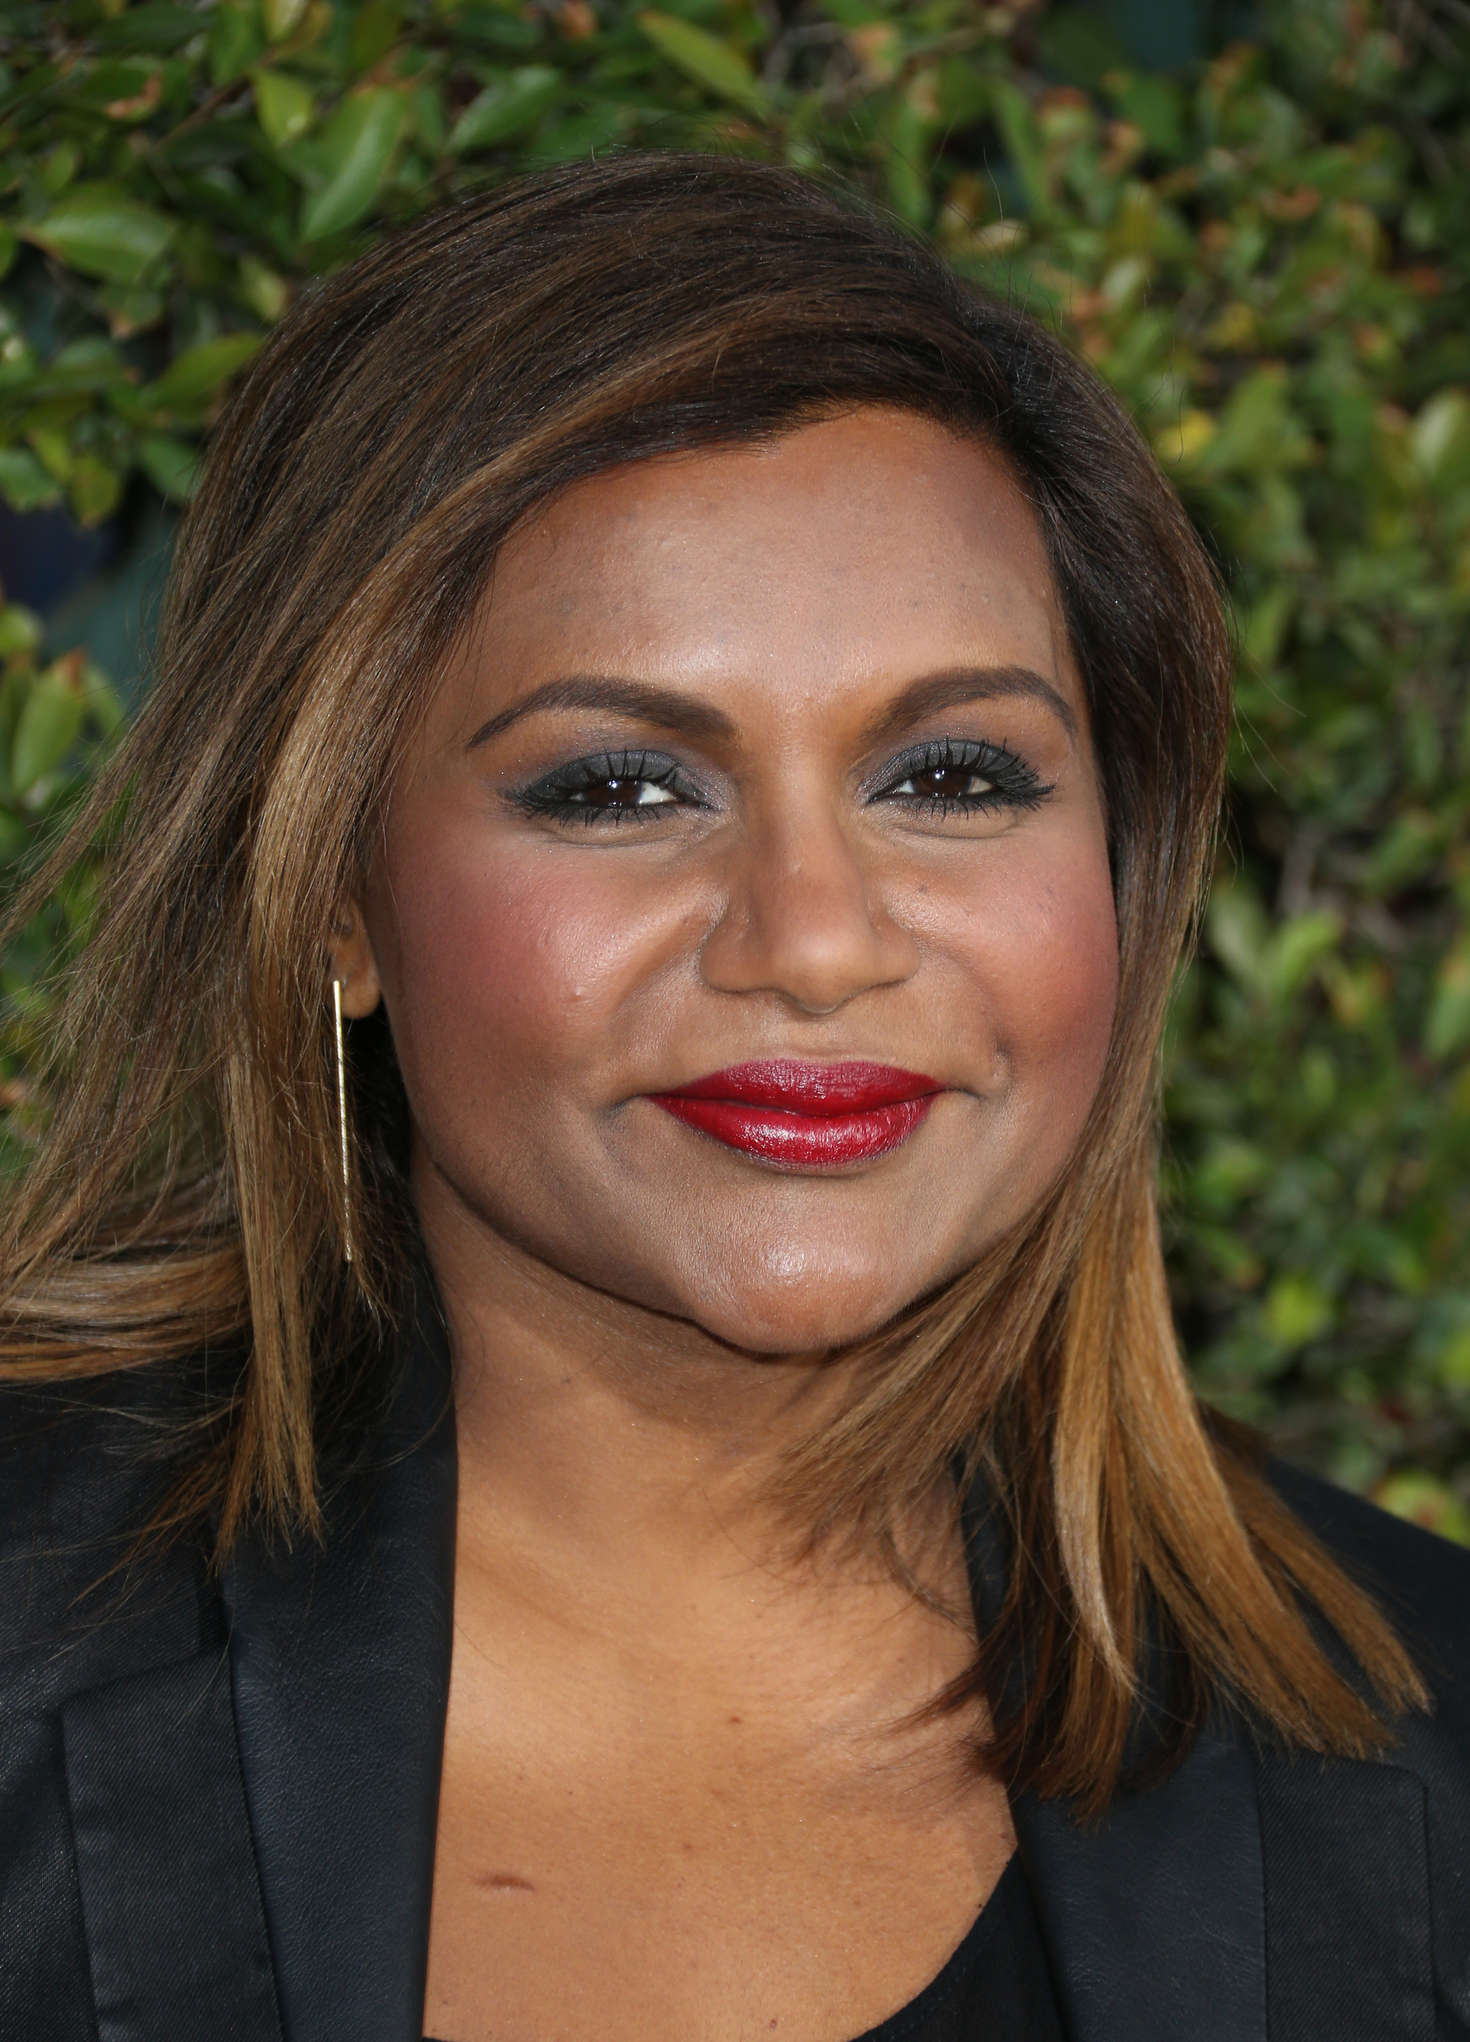 Mindy Kaling The Wizarding World of Harry Potter VIP Press Event in Hollywood